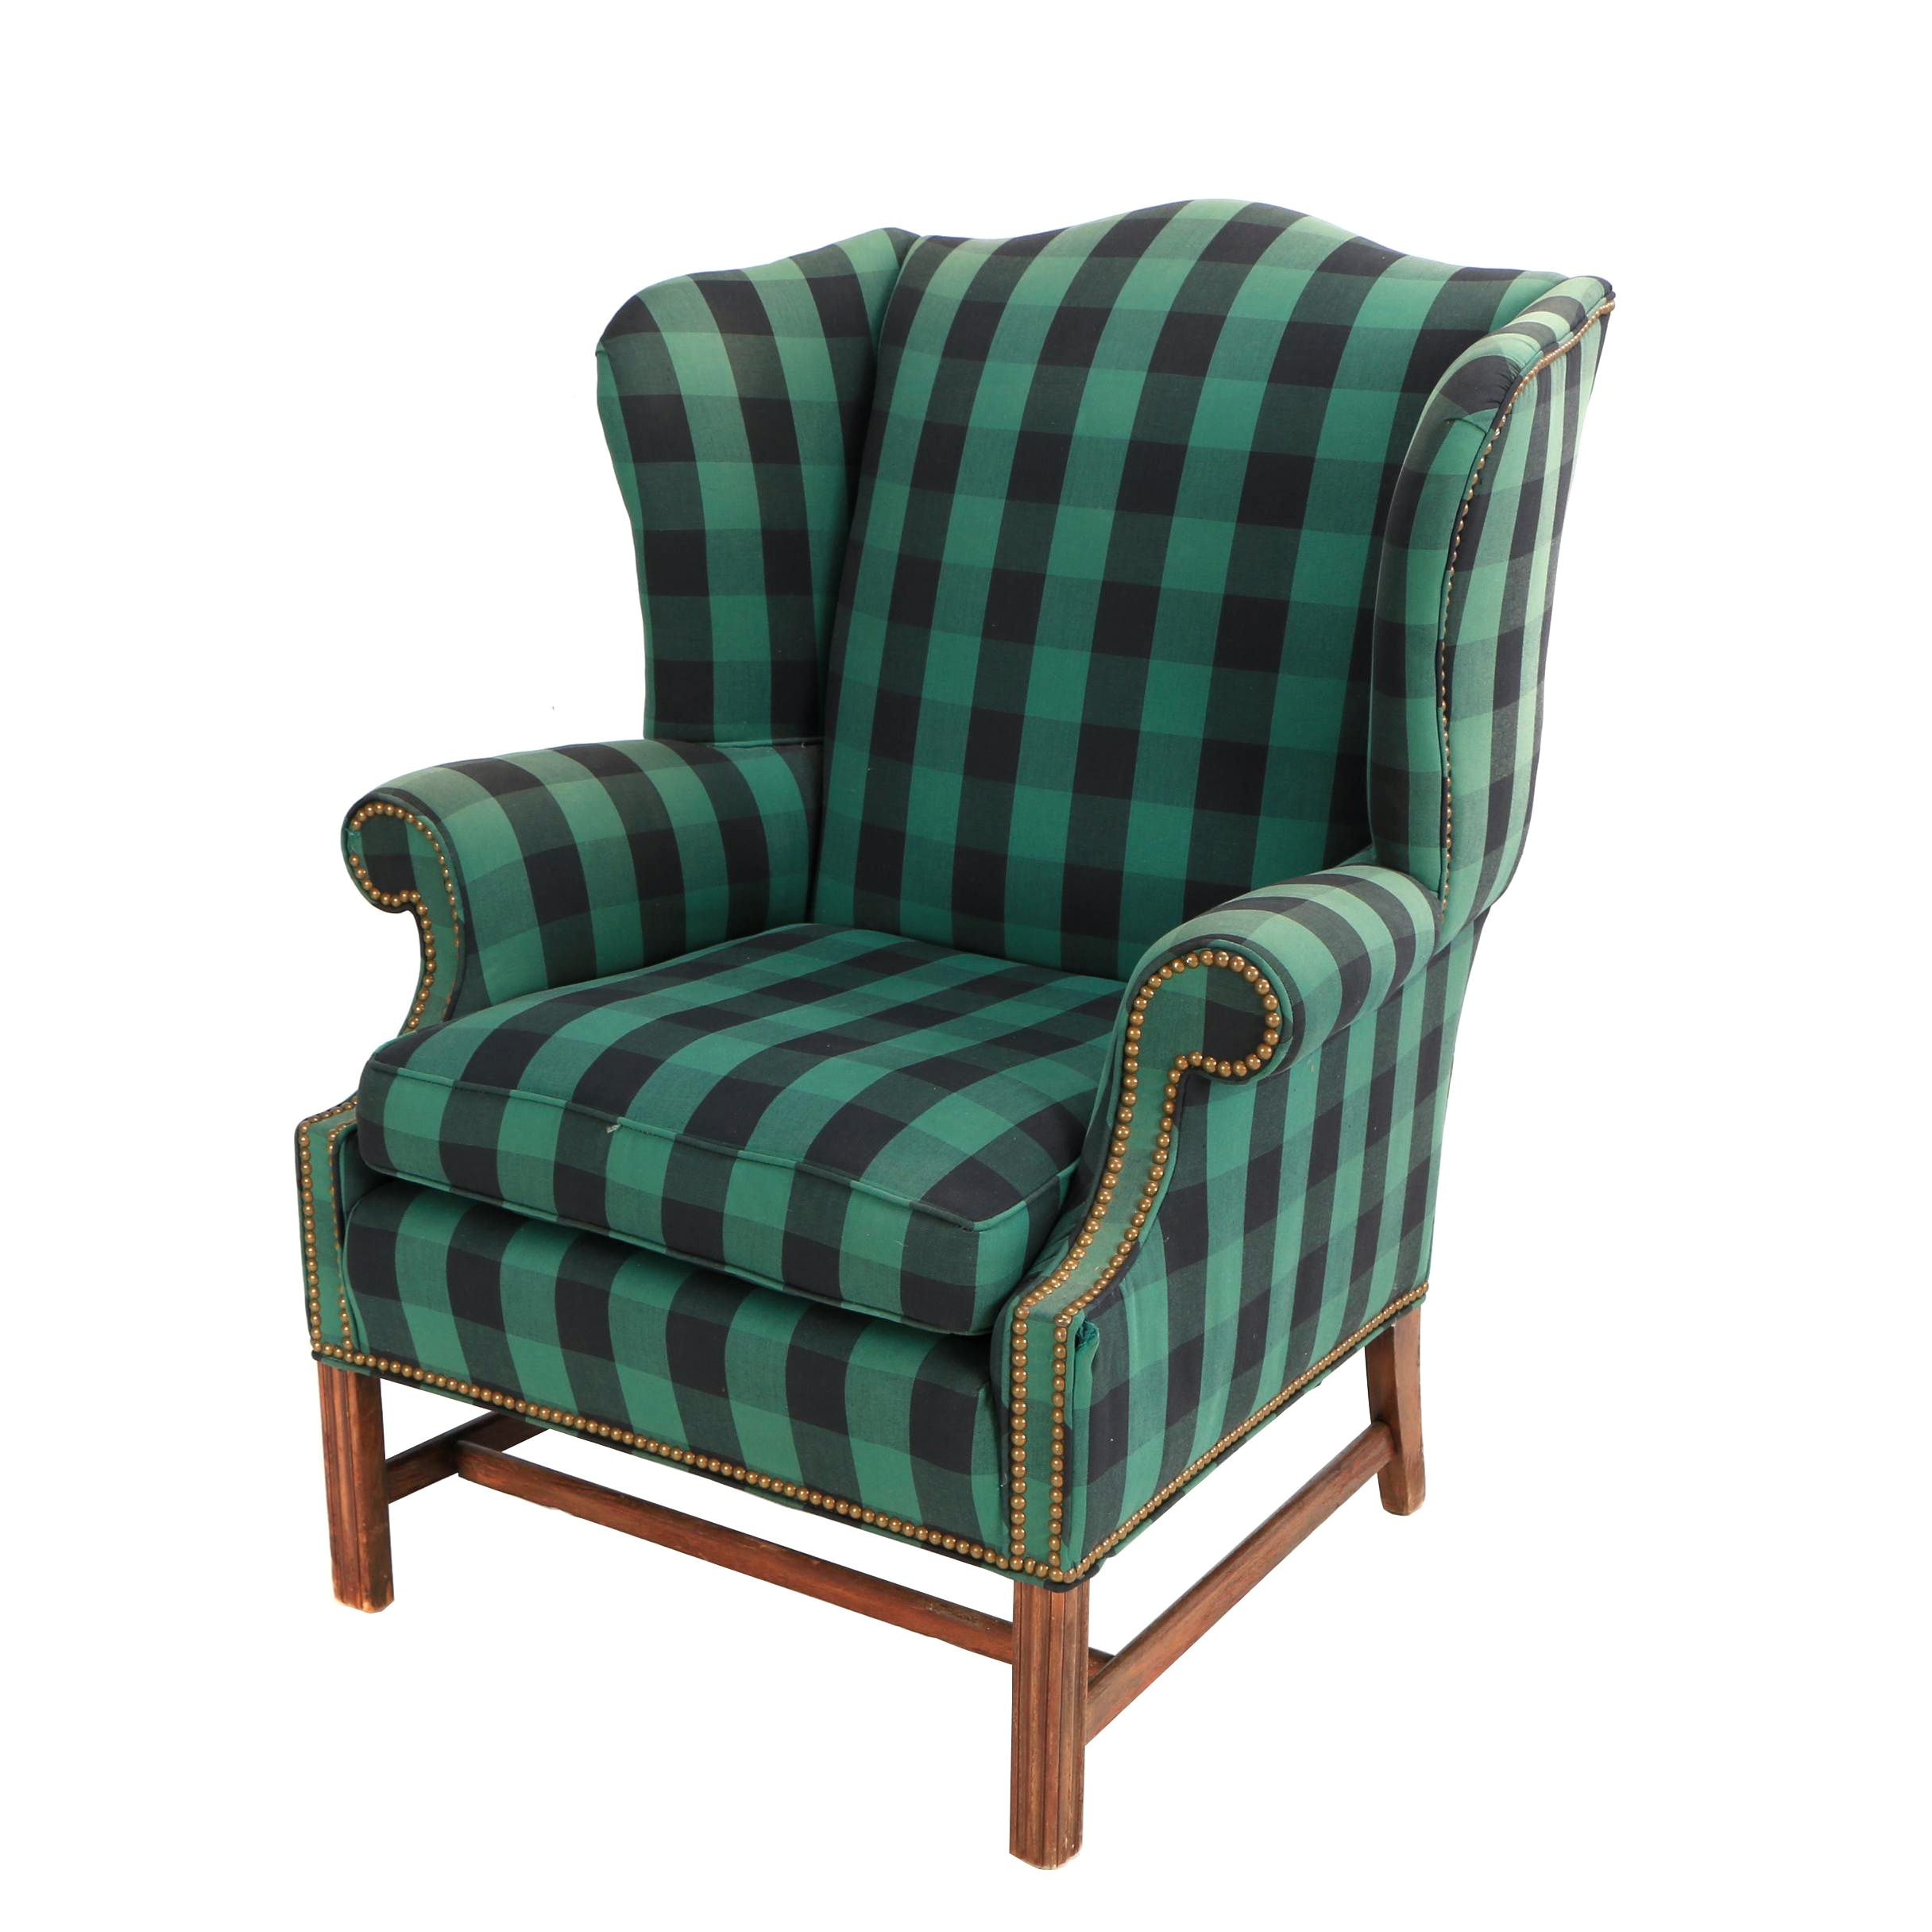 Plaid Upholstered Wing Chair with Brass Nailhead Trim